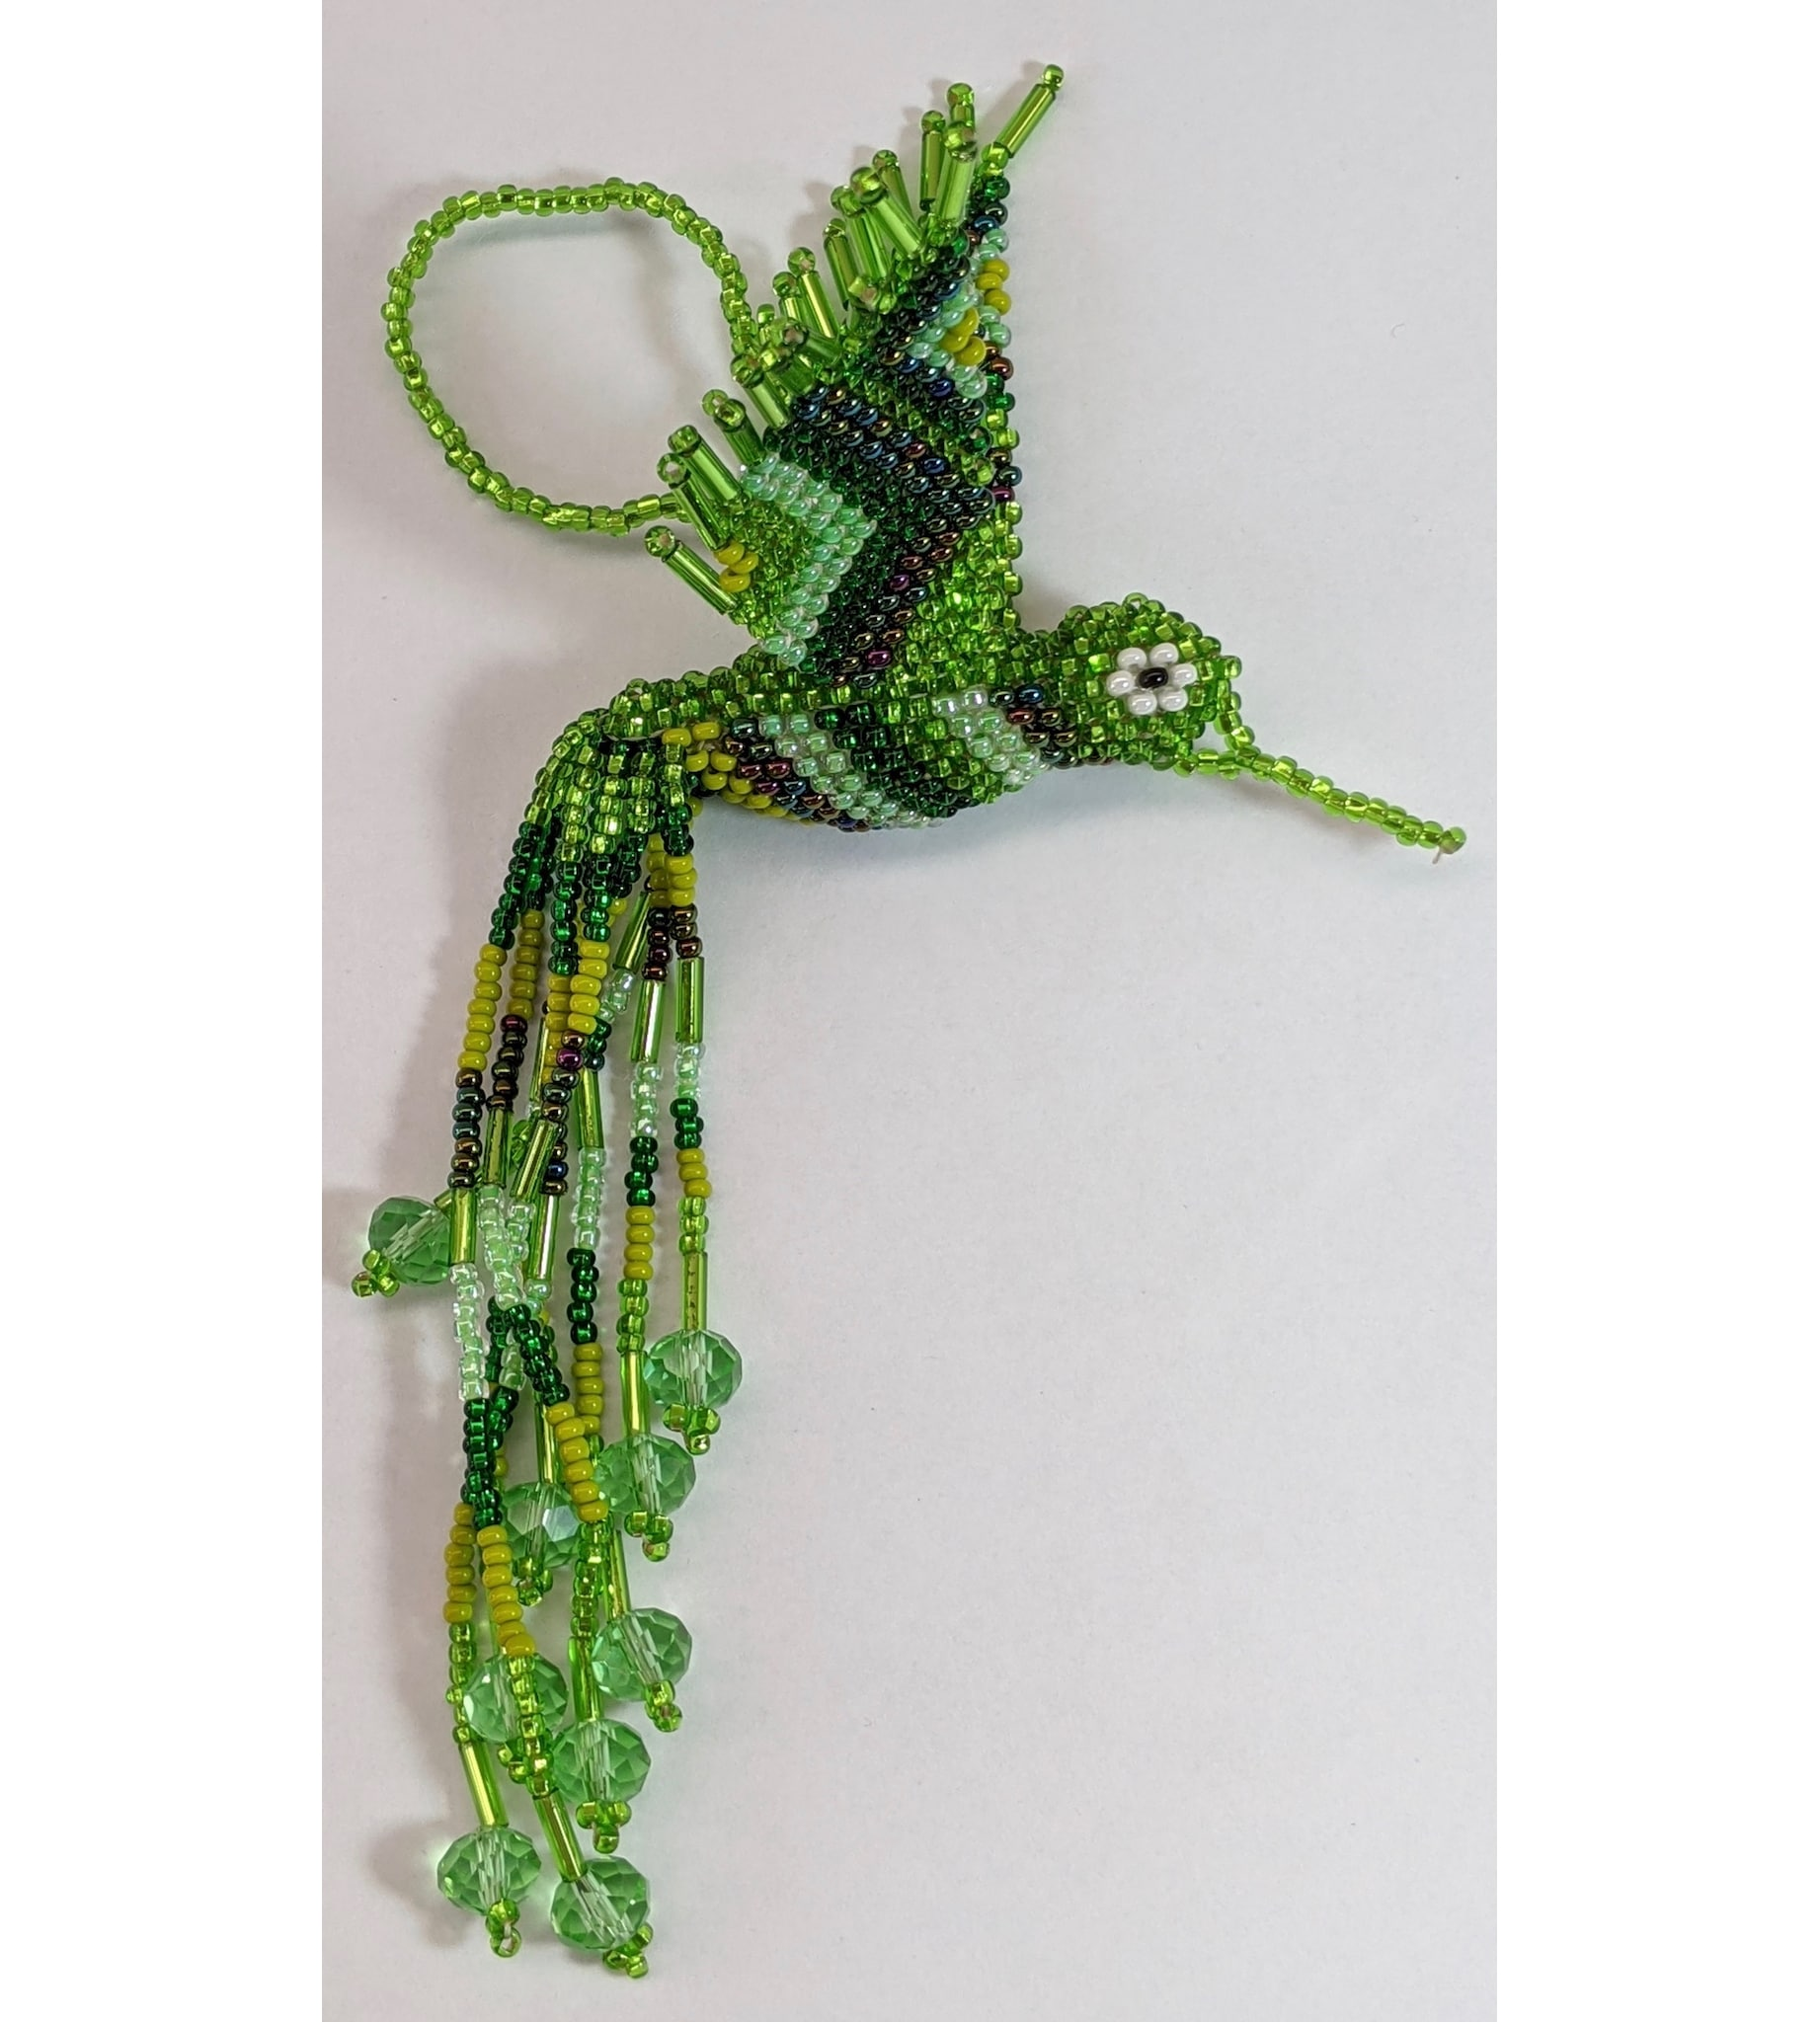 Beaded Hummingbird Beaded Ornament - Greens and Lime Green